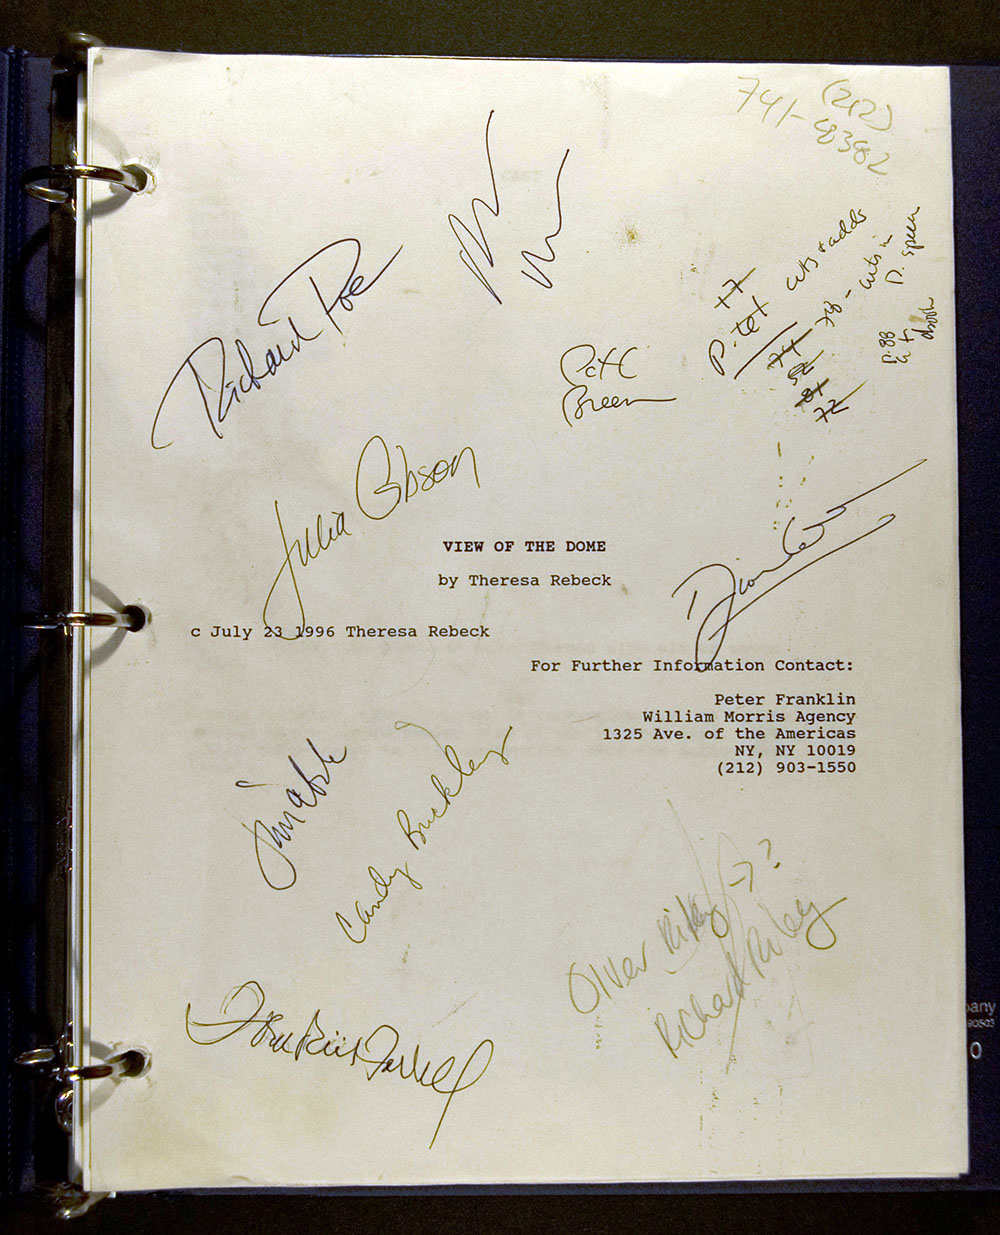 View of the Dome (play script with autograph revisions and cast member autographs), 1996 Subject: theater, authors, dramatists